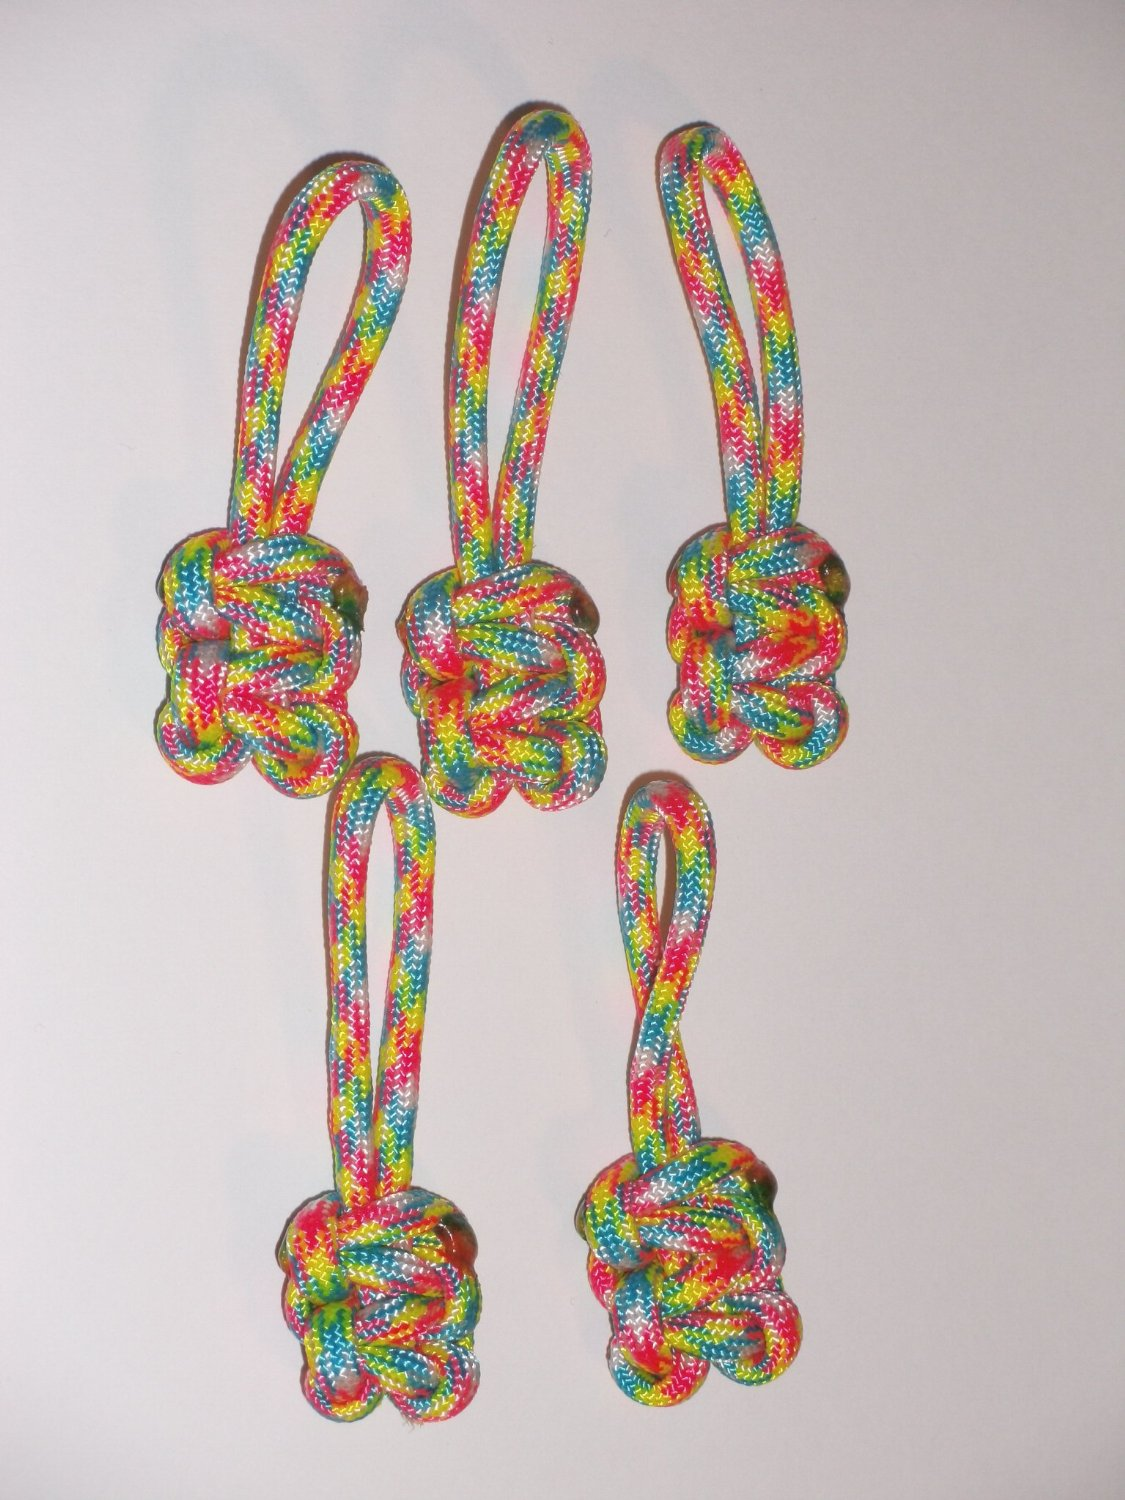 RedVex Paracord Zipper Pulls / Lanyards - Lot of 5 - ~2.5 - Confetti